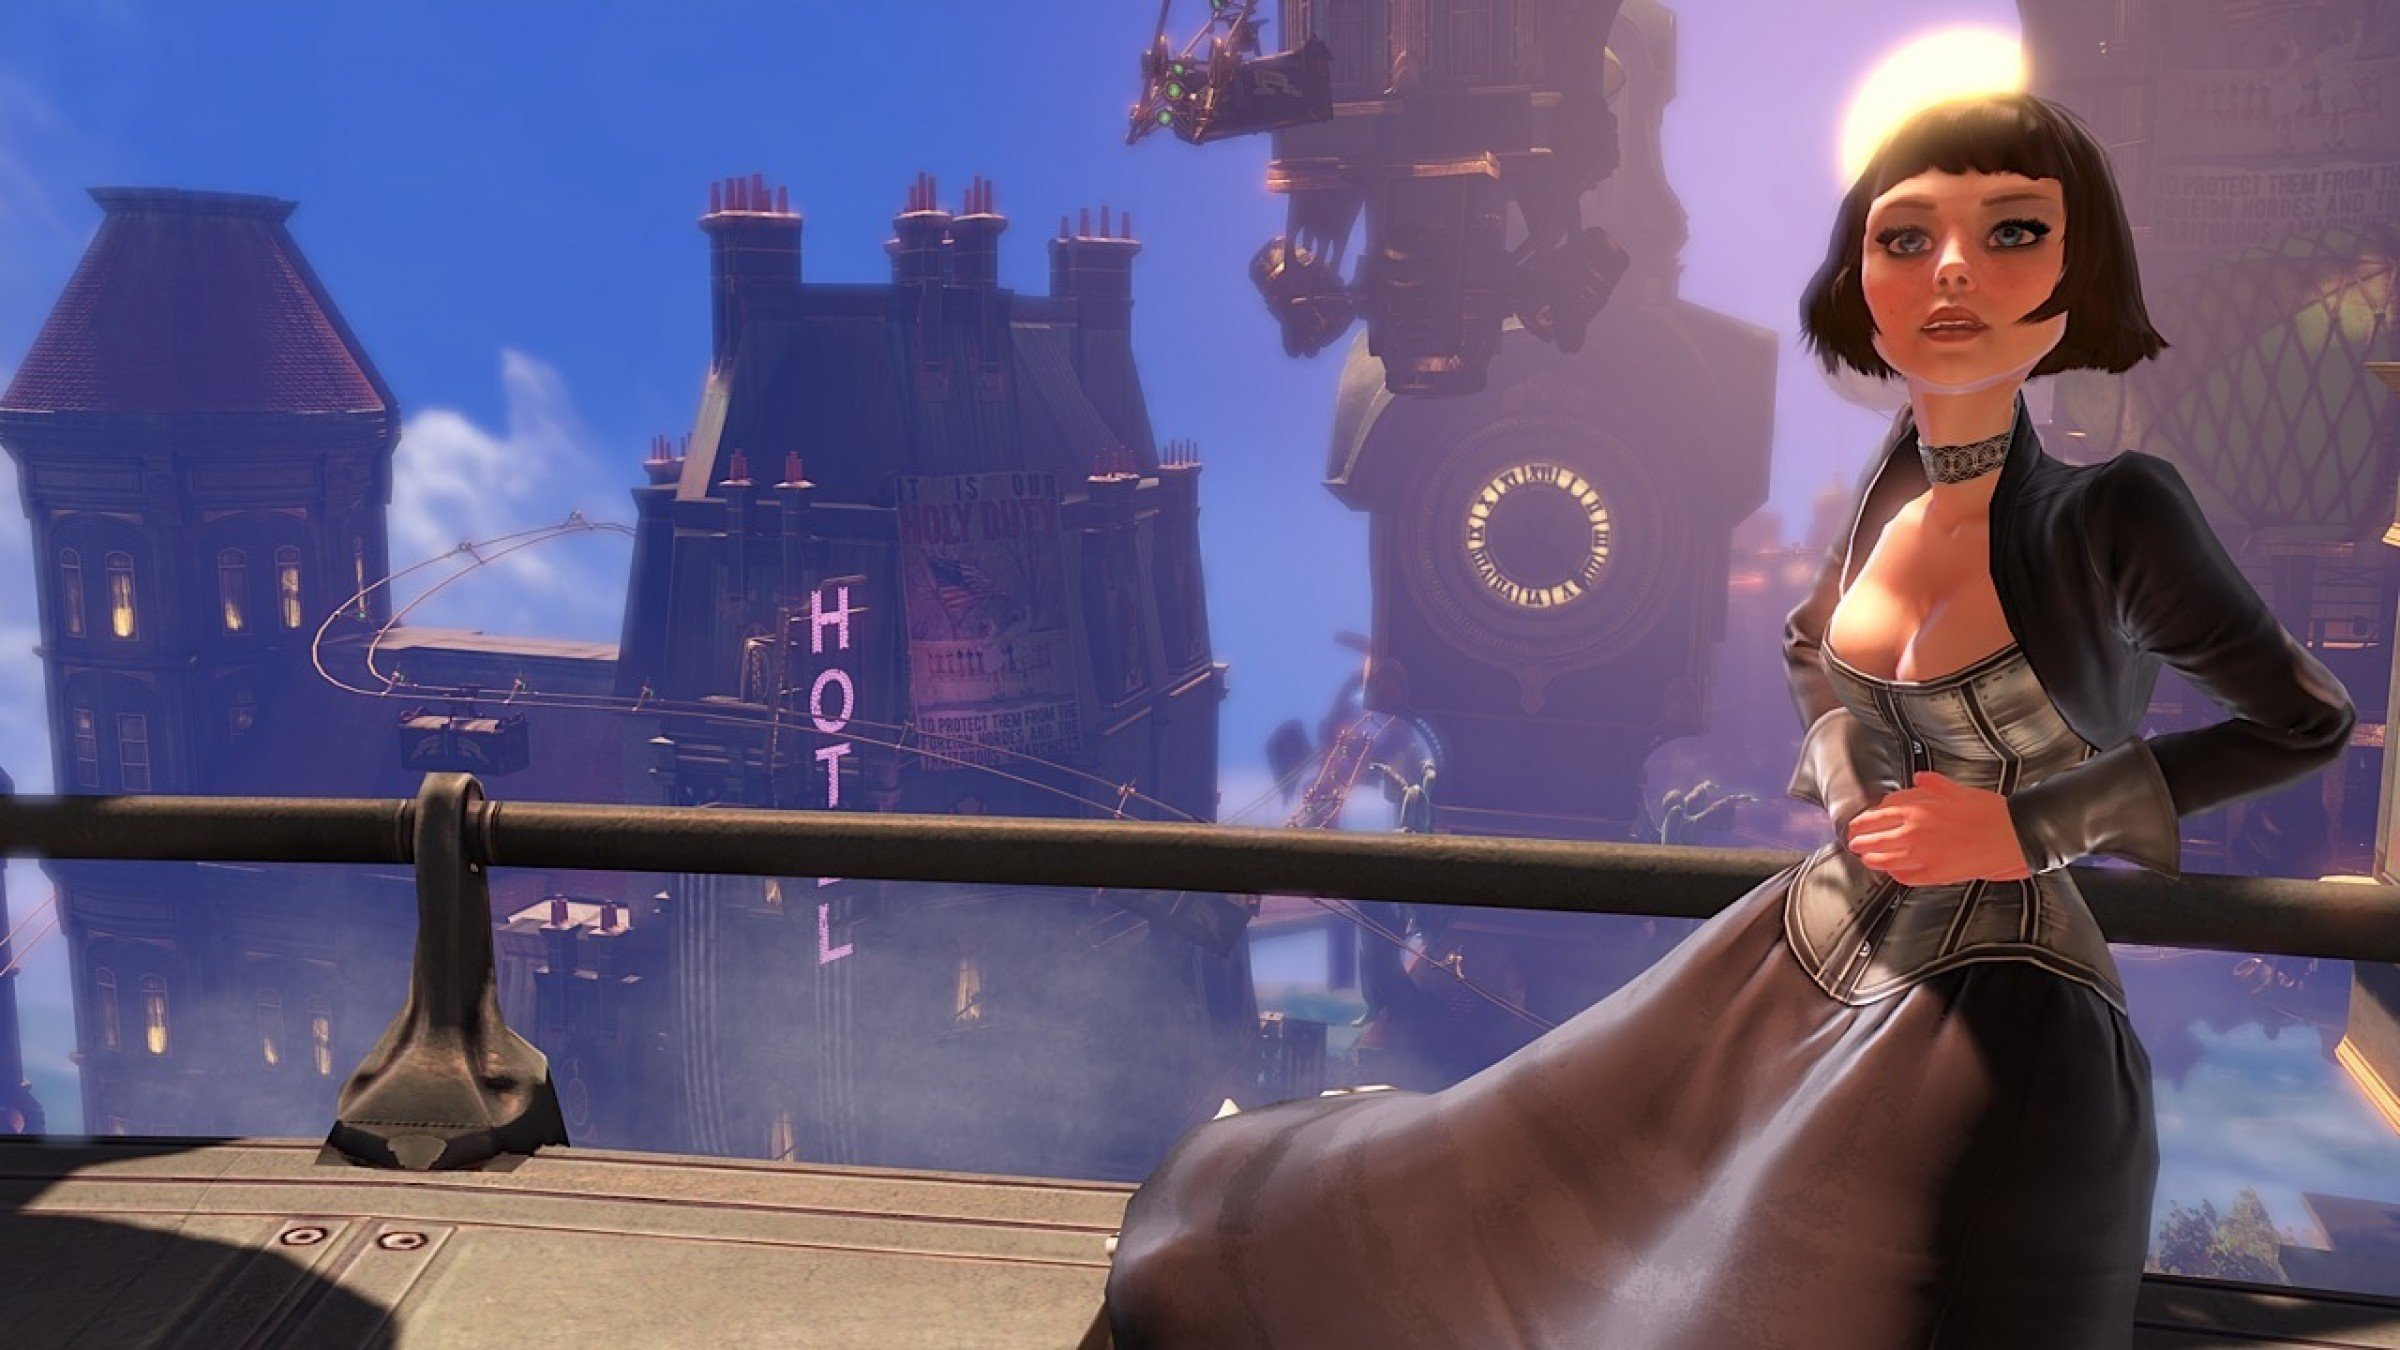 Boy, Games Sure are Getting Close to Movies: The 'Bioshock Infinite' Trailer